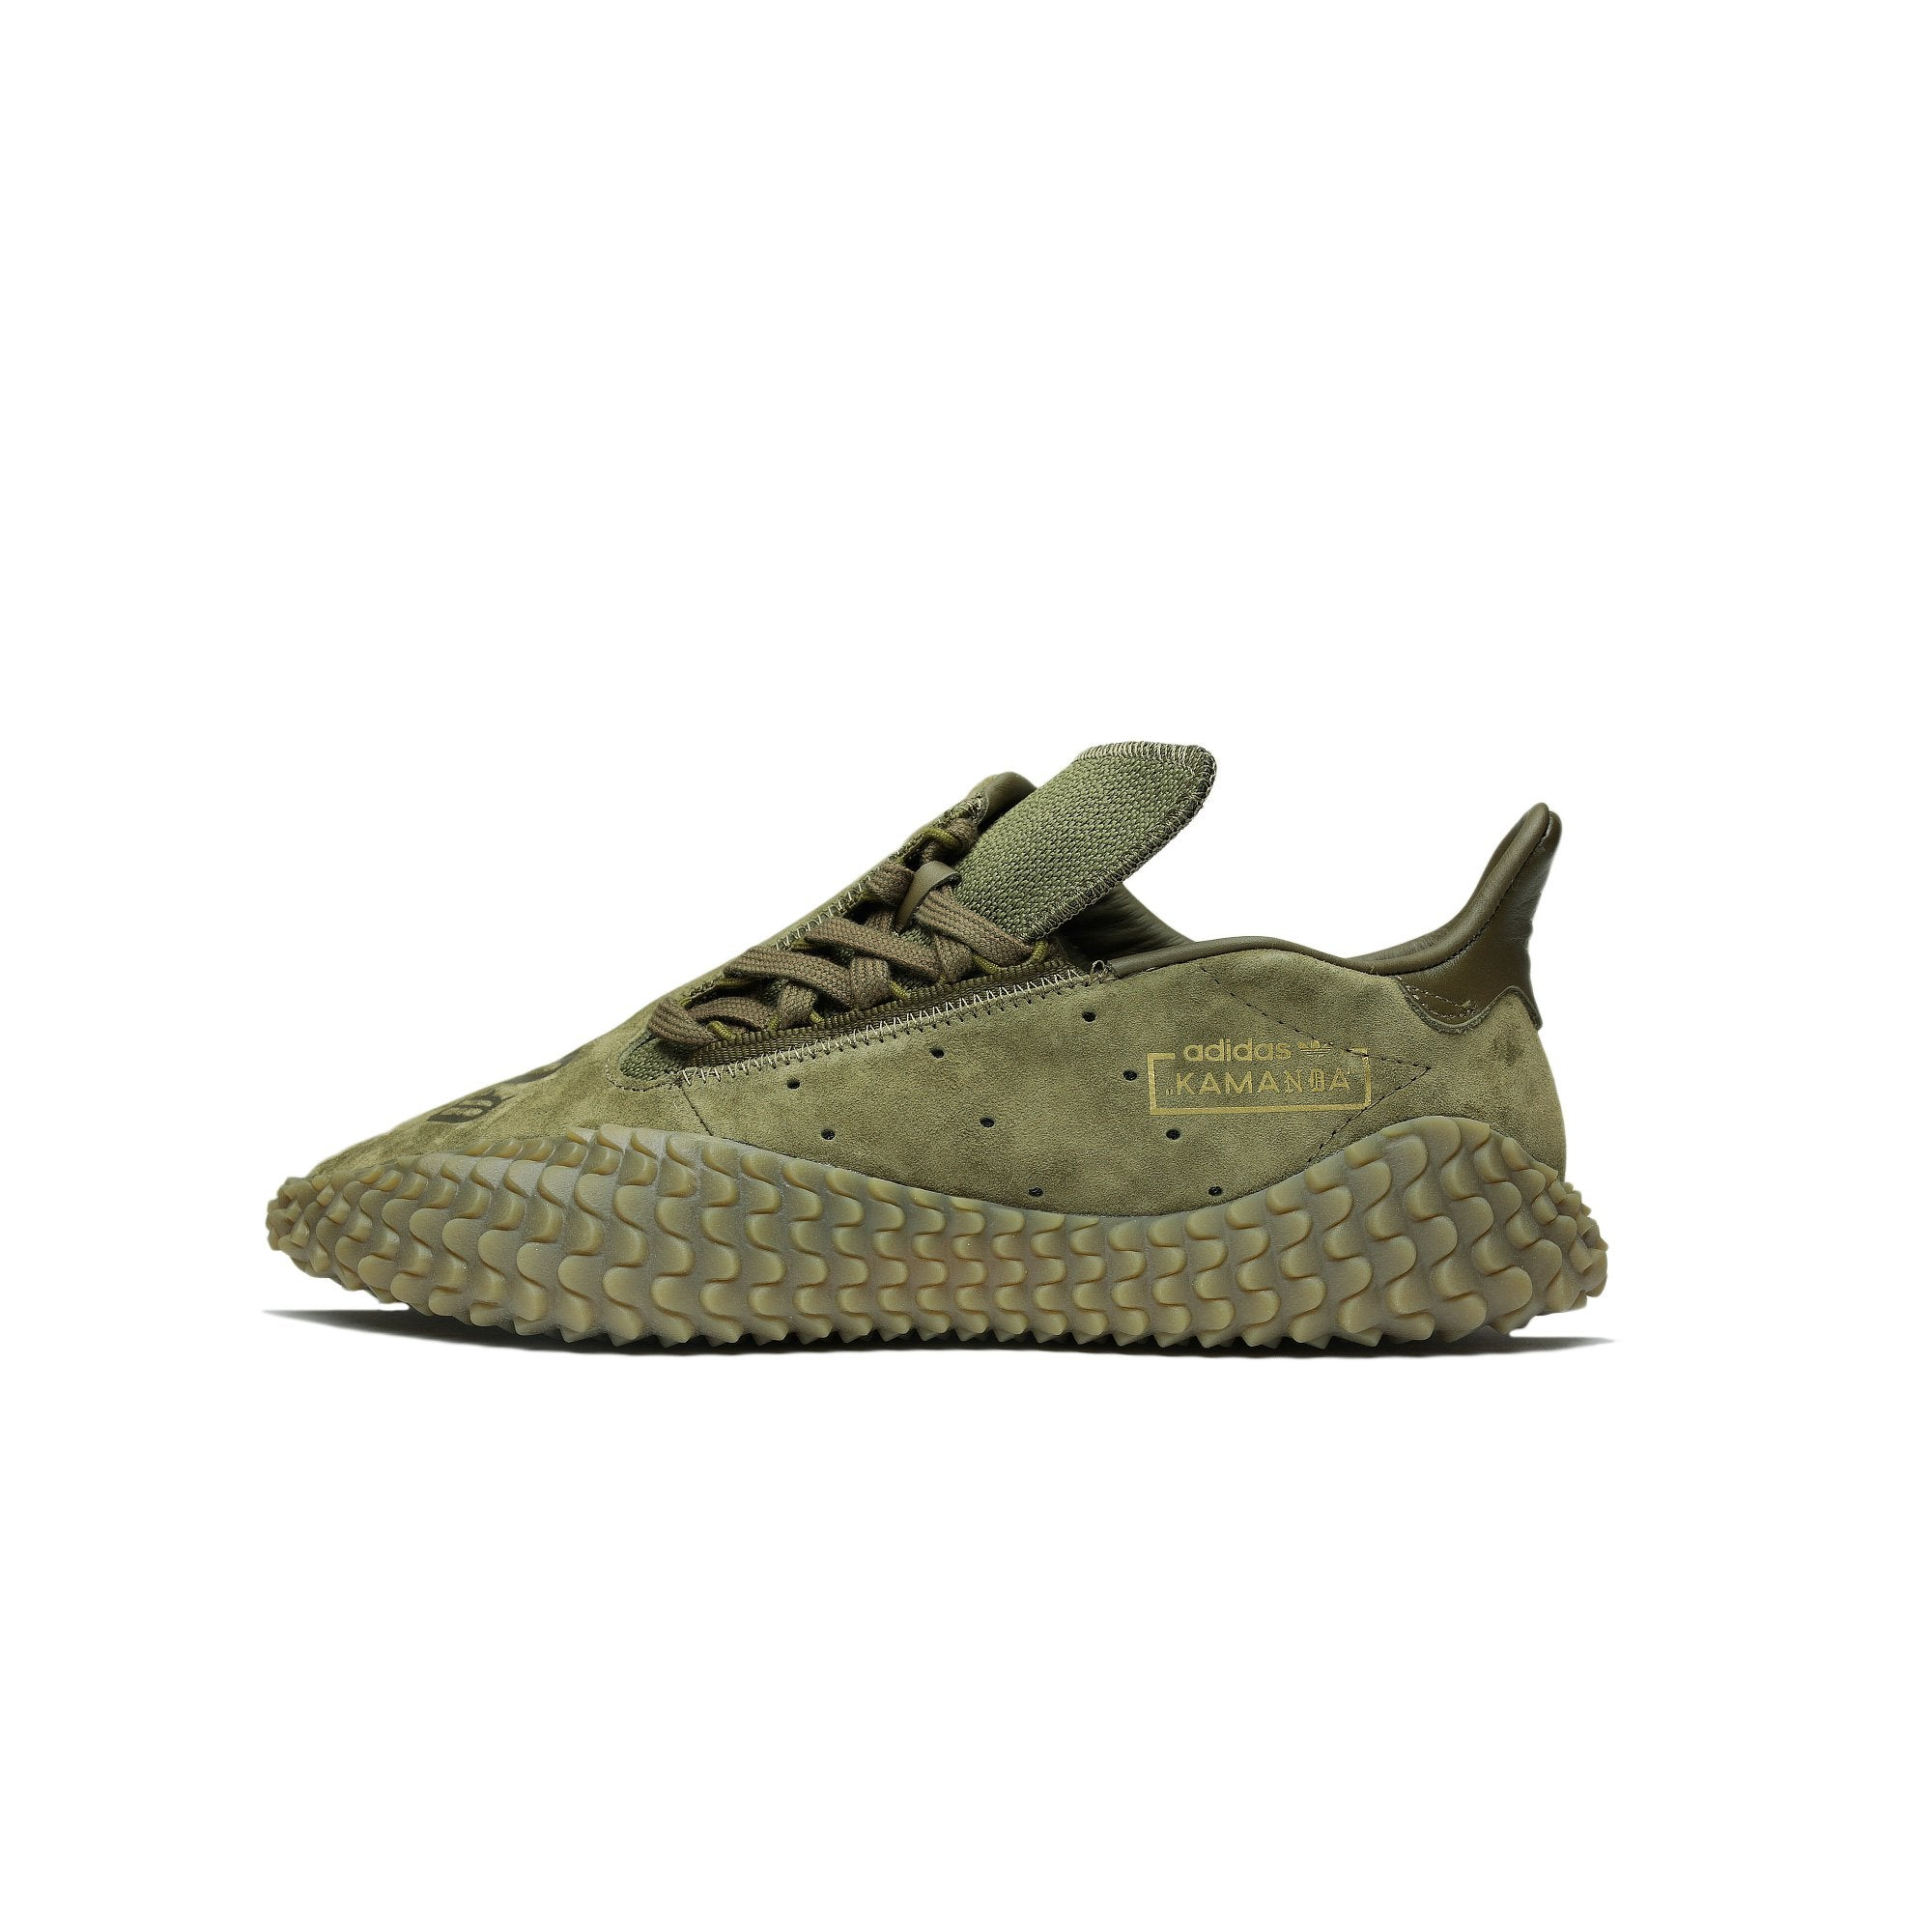 timeless design 5914f 4fa1f Details about Mens Adidas x NEIGHBORHOOD Kamanda 01 Dark Olive B37340